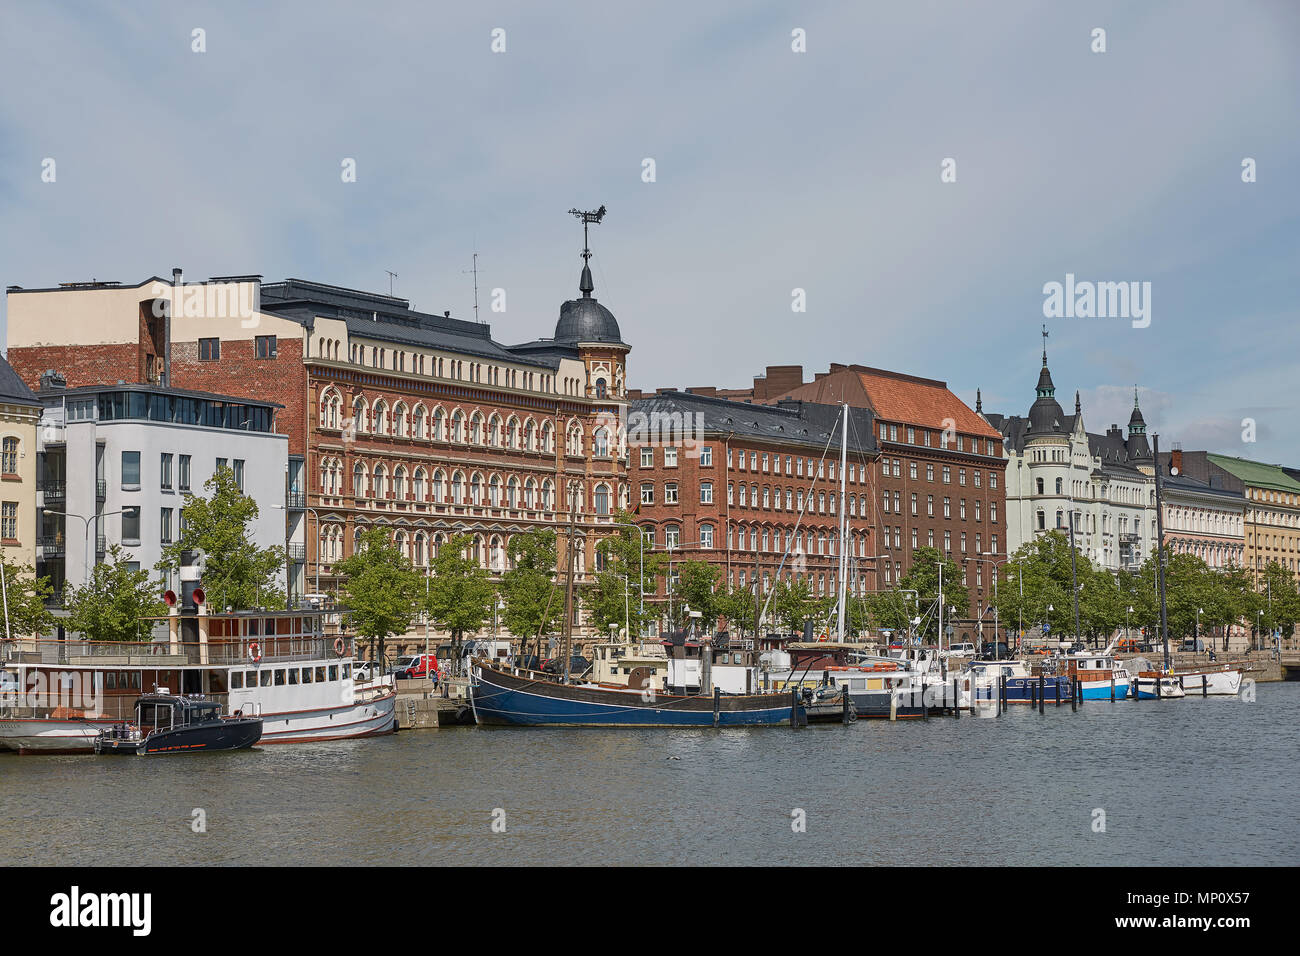 HELSINKI, FINLAND - JULY 10, 2017: Exquisite residences in Helsinki in Finland are along embankment Pohjoisranta. They were built in late 19th and ear - Stock Image